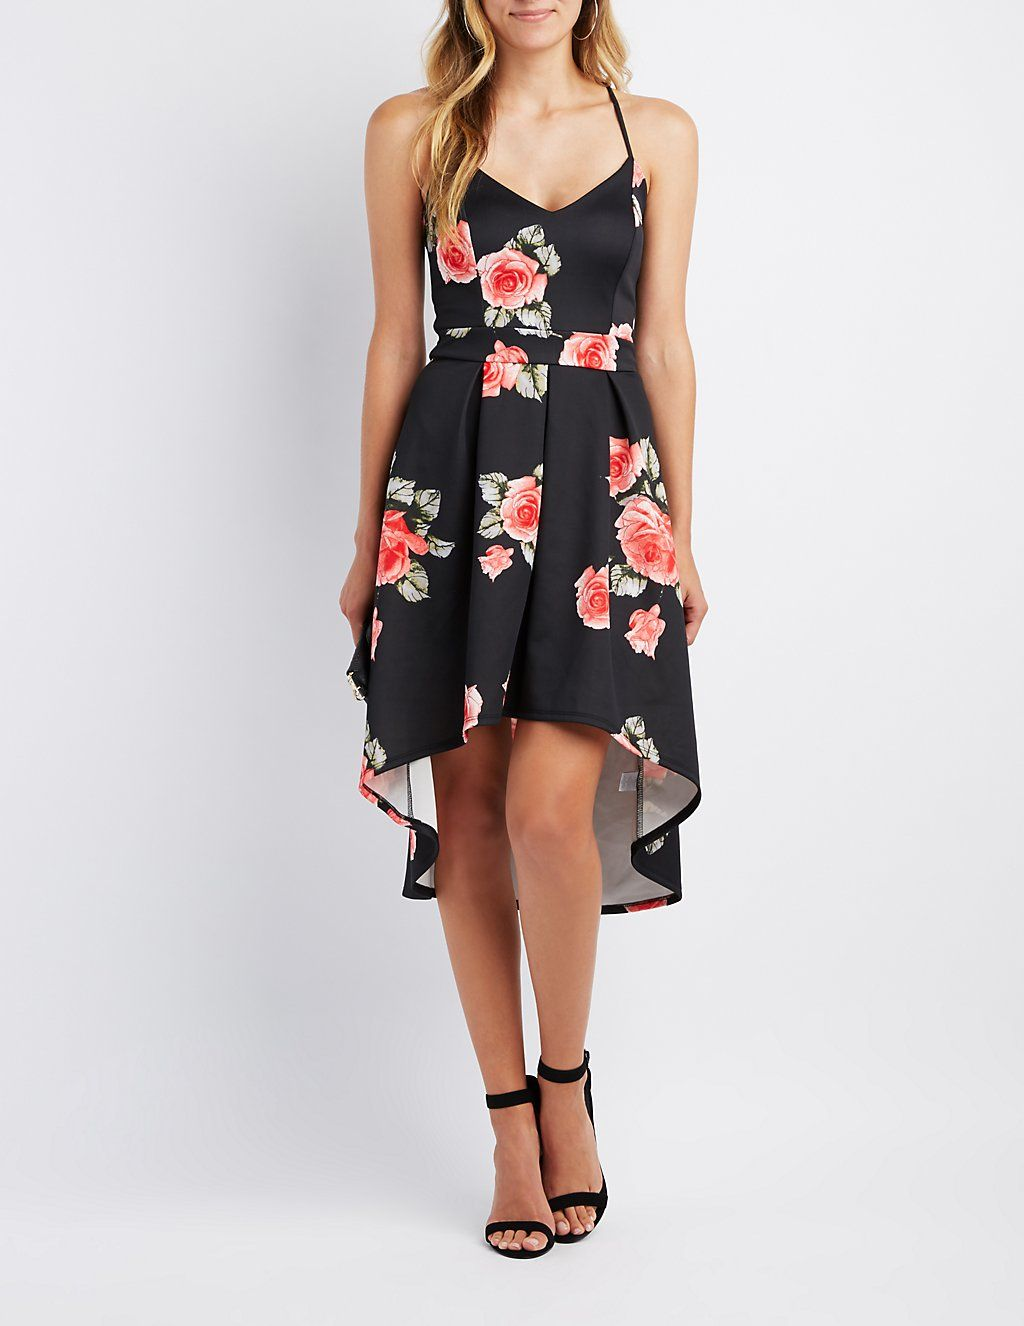 Plus Size Homecoming Dresses Charlotte Russe – DACC